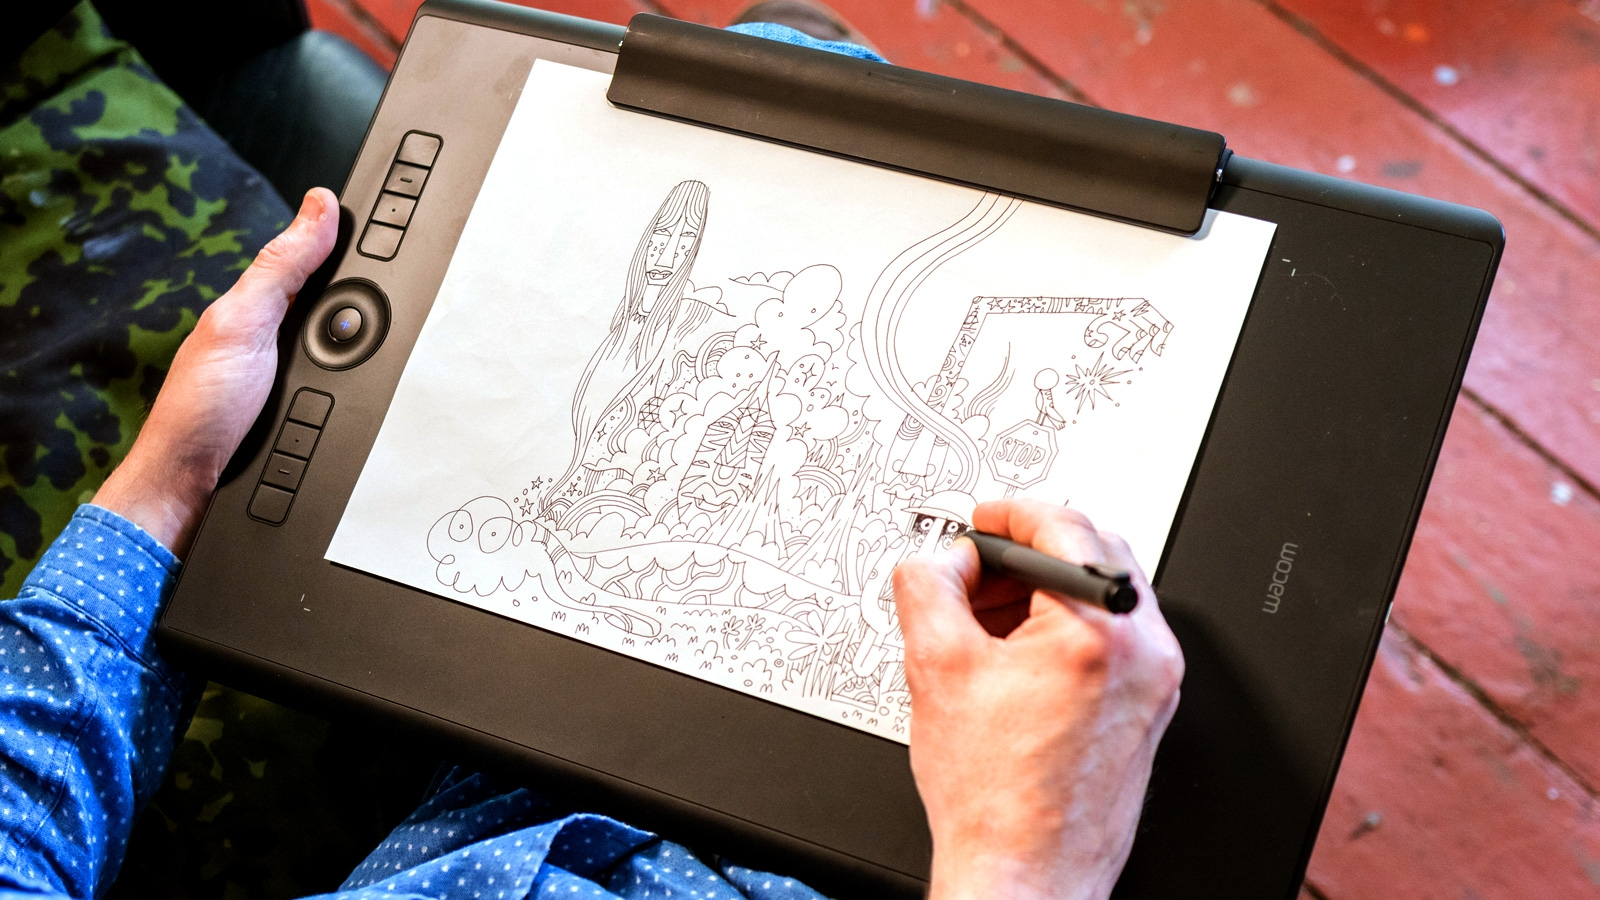 Draw On Paper And Screen At The Same Time With The New